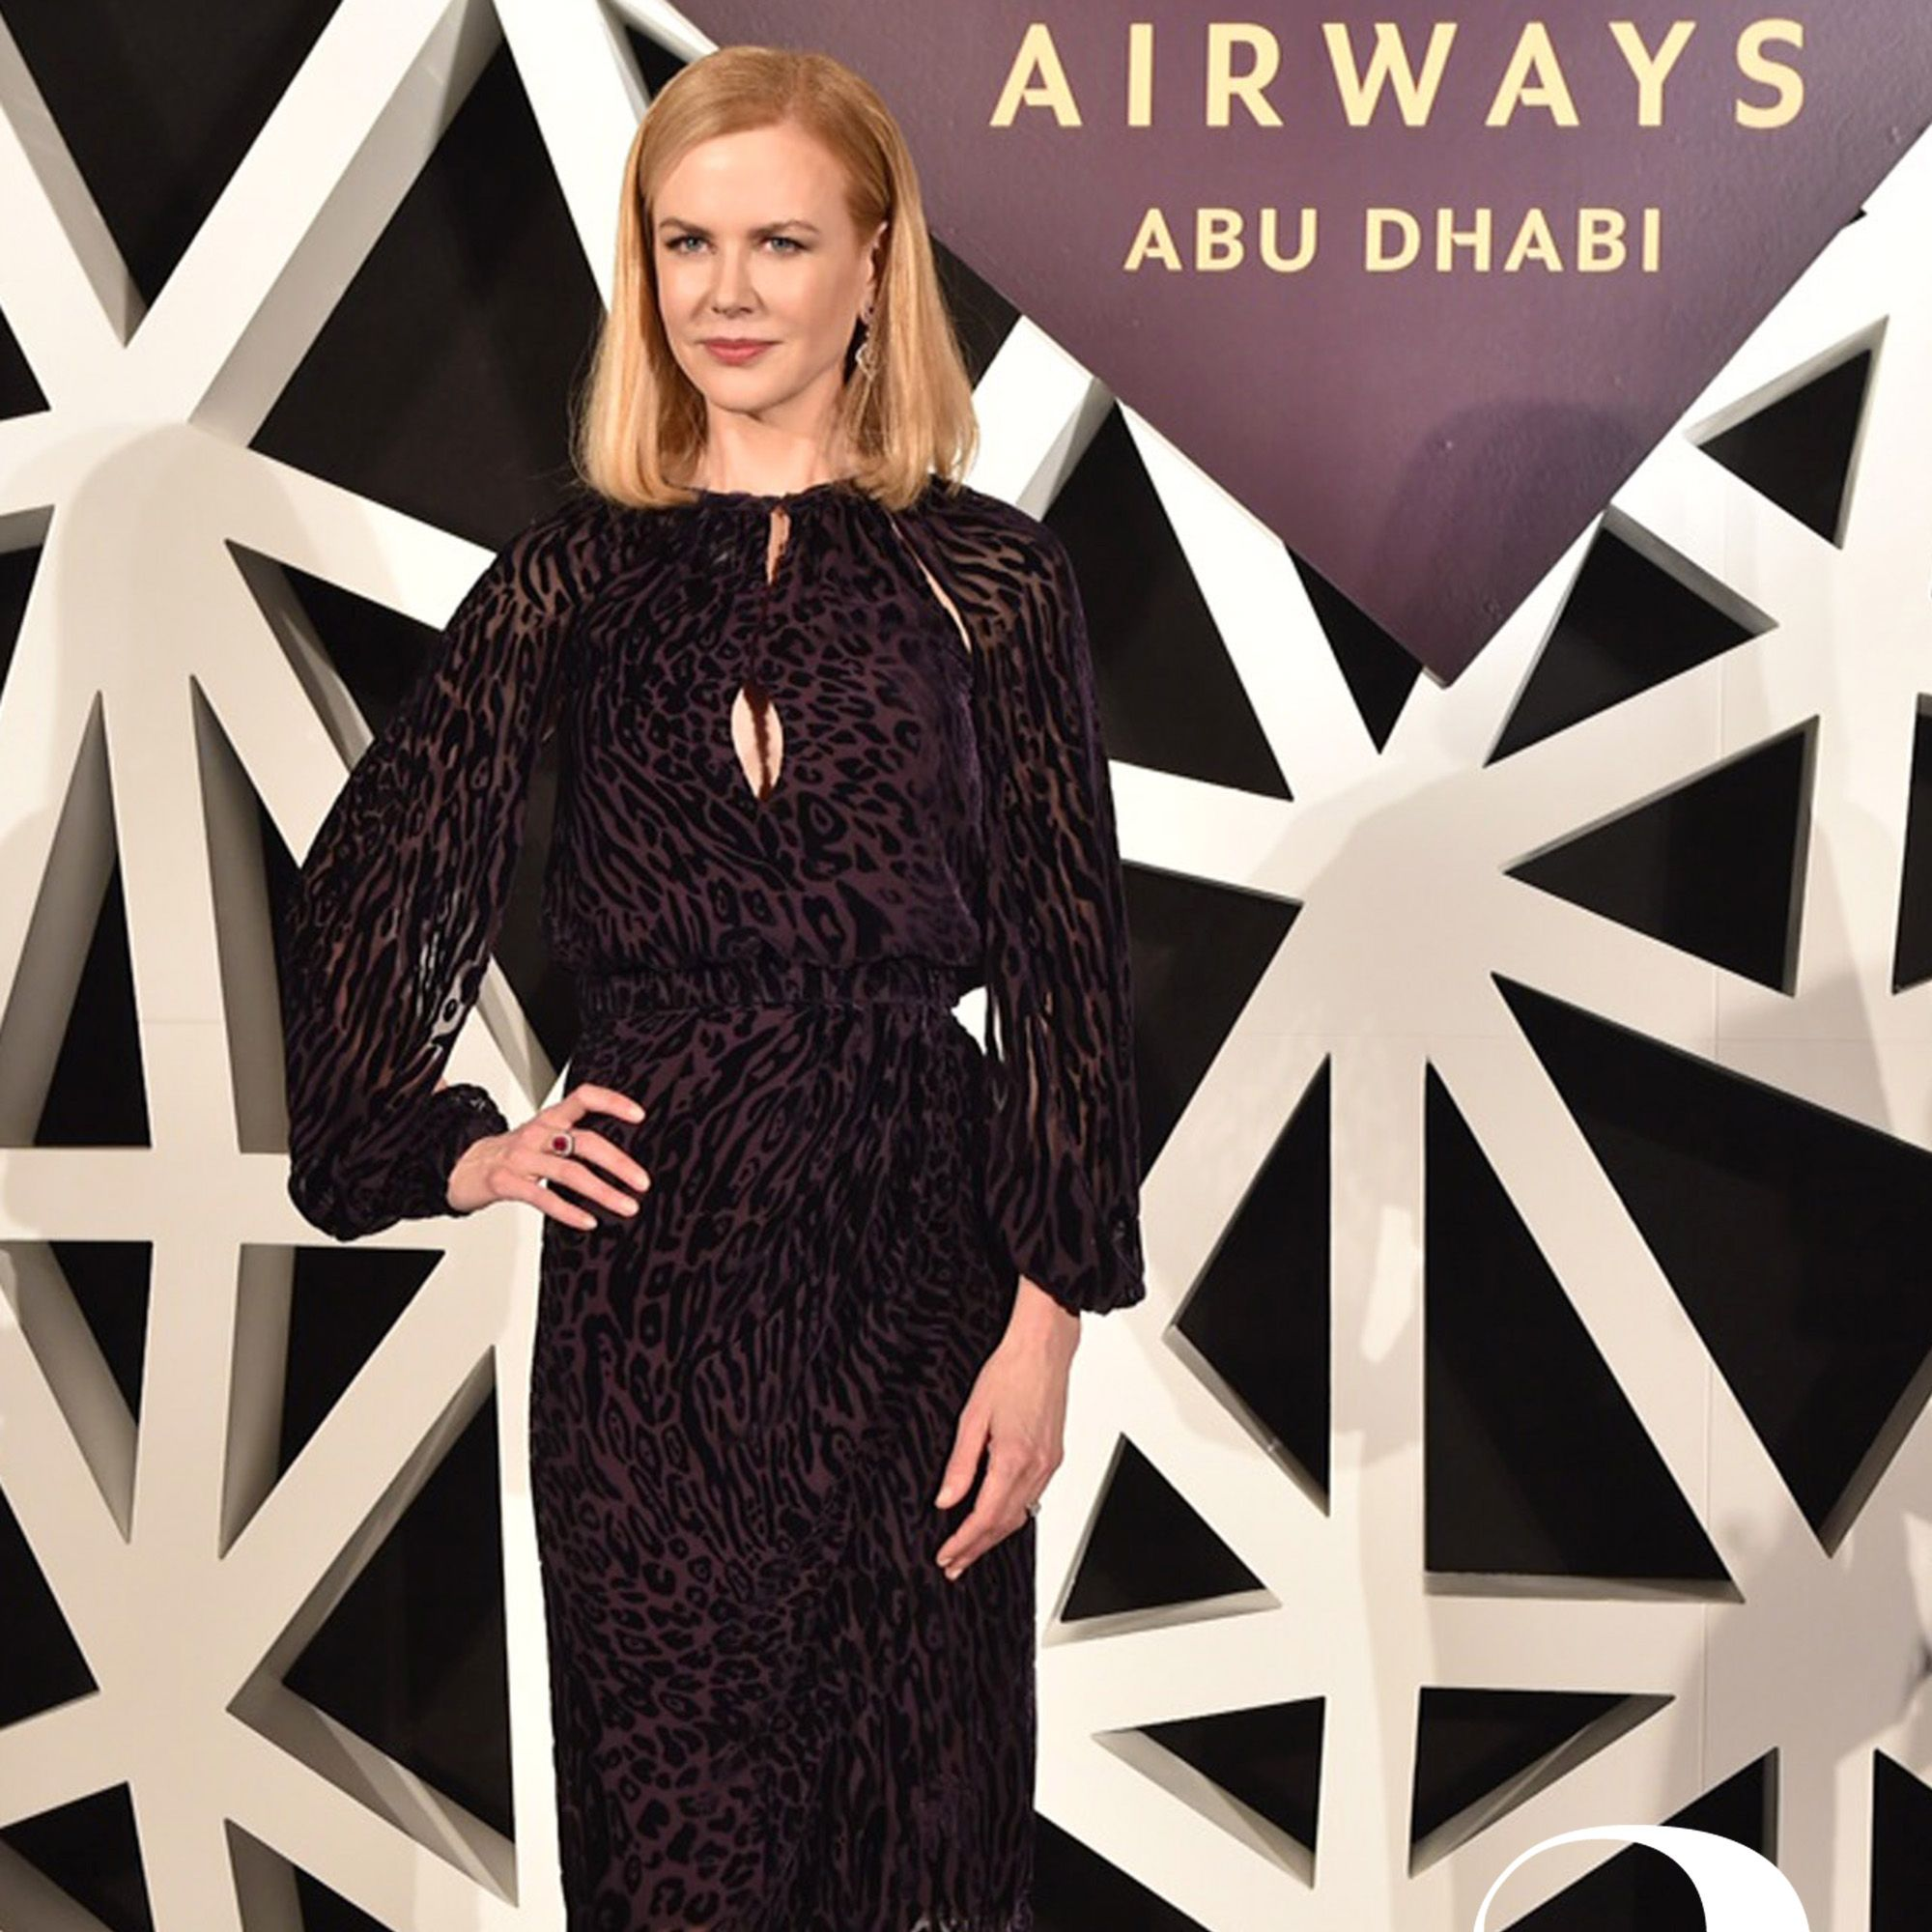 """At 5' 11"""" Nicole Kidman needs a bit of space when she flies. Now the leggy actress has become the global ambassador for Etihad luxury airlines. The Hours Oscar-winner, 47, says she's been using the Middle Eastern firm for many years as she jets between movie sets and Hollywood. """"This is my second home here,"""" she told The National magazine in the UAE. """"I spend so much time flying just because of my job, and also because I am a traveller and I am curious about the world,"""" added the Australian/American star. """"I have done movies all over the Middle East so I had flown Etihad many times prior to becoming their ambassador,"""" continued the Dead Calm actress. """"When we talk about style, elegance and flair, that is Nicole,"""" said the president of the airline James Hogan. """"She is a great star, a great friend of Etihad Airways and a great friend of Abu Dhabi,"""" he added.&#xA&#x3B;&lt&#x3B;P&gt&#x3B;&#xA&#x3B;Pictured: Nicole Kidman&#xA&#x3B;&lt&#x3B;B&gt&#x3B;Ref: SPL975910  140315  &lt&#x3B;/B&gt&#x3B;&lt&#x3B;BR/&gt&#x3B;&#xA&#x3B;Picture by: Etihad/Splash News&lt&#x3B;BR/&gt&#x3B;&#xA&#x3B;&lt&#x3B;/P&gt&#x3B;&lt&#x3B;P&gt&#x3B;&#xA&#x3B;&lt&#x3B;B&gt&#x3B;Splash News and Pictures&lt&#x3B;/B&gt&#x3B;&lt&#x3B;BR/&gt&#x3B;&#xA&#x3B;Los Angeles:310-821-2666&lt&#x3B;BR/&gt&#x3B;&#xA&#x3B;New York:212-619-2666&lt&#x3B;BR/&gt&#x3B;&#xA&#x3B;London:870-934-2666&lt&#x3B;BR/&gt&#x3B;&#xA&#x3B;photodesk@splashnews.com&lt&#x3B;BR/&gt&#x3B;&#xA&#x3B;&lt&#x3B;/P&gt&#x3B;"""